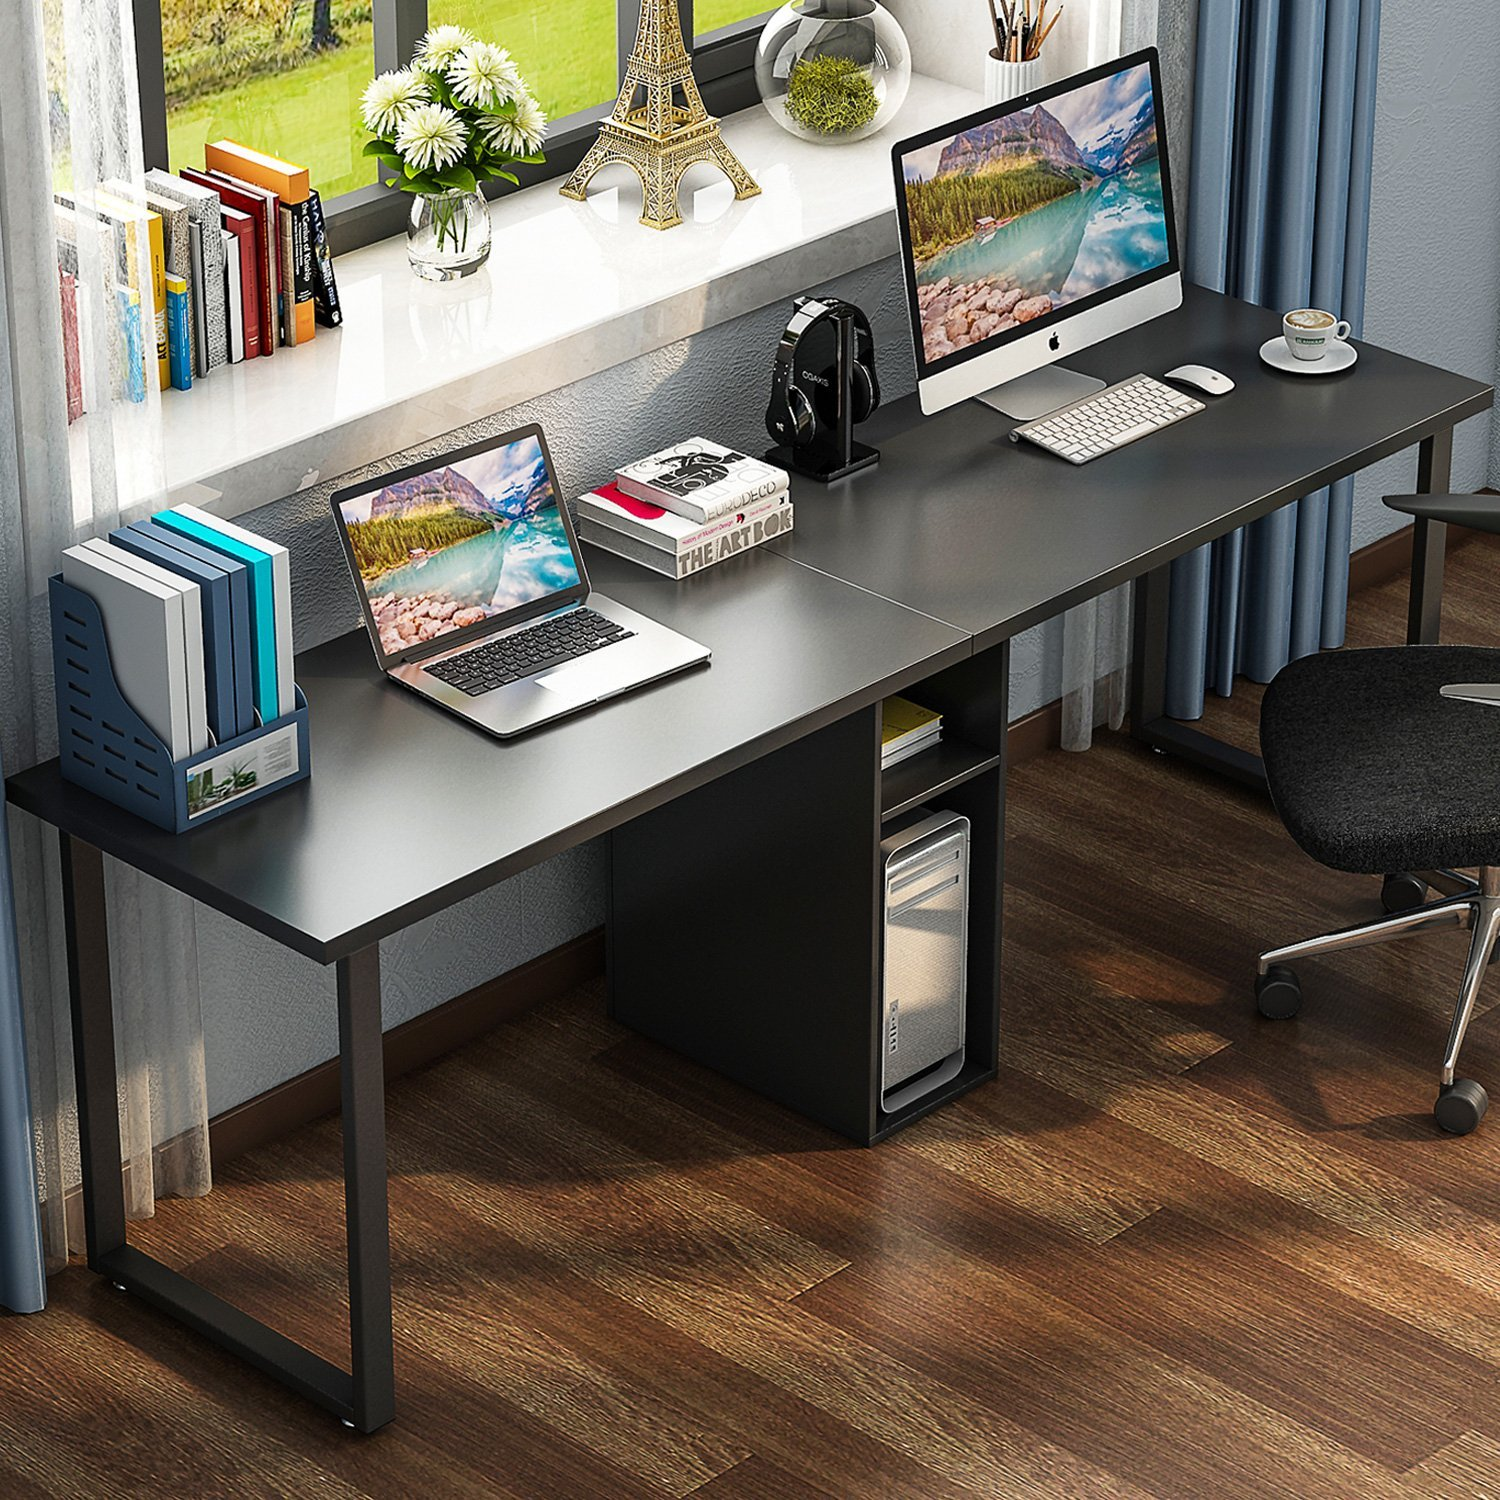 Remarkable Cheap 2 Person Office Desk Find 2 Person Office Desk Deals Home Interior And Landscaping Elinuenasavecom